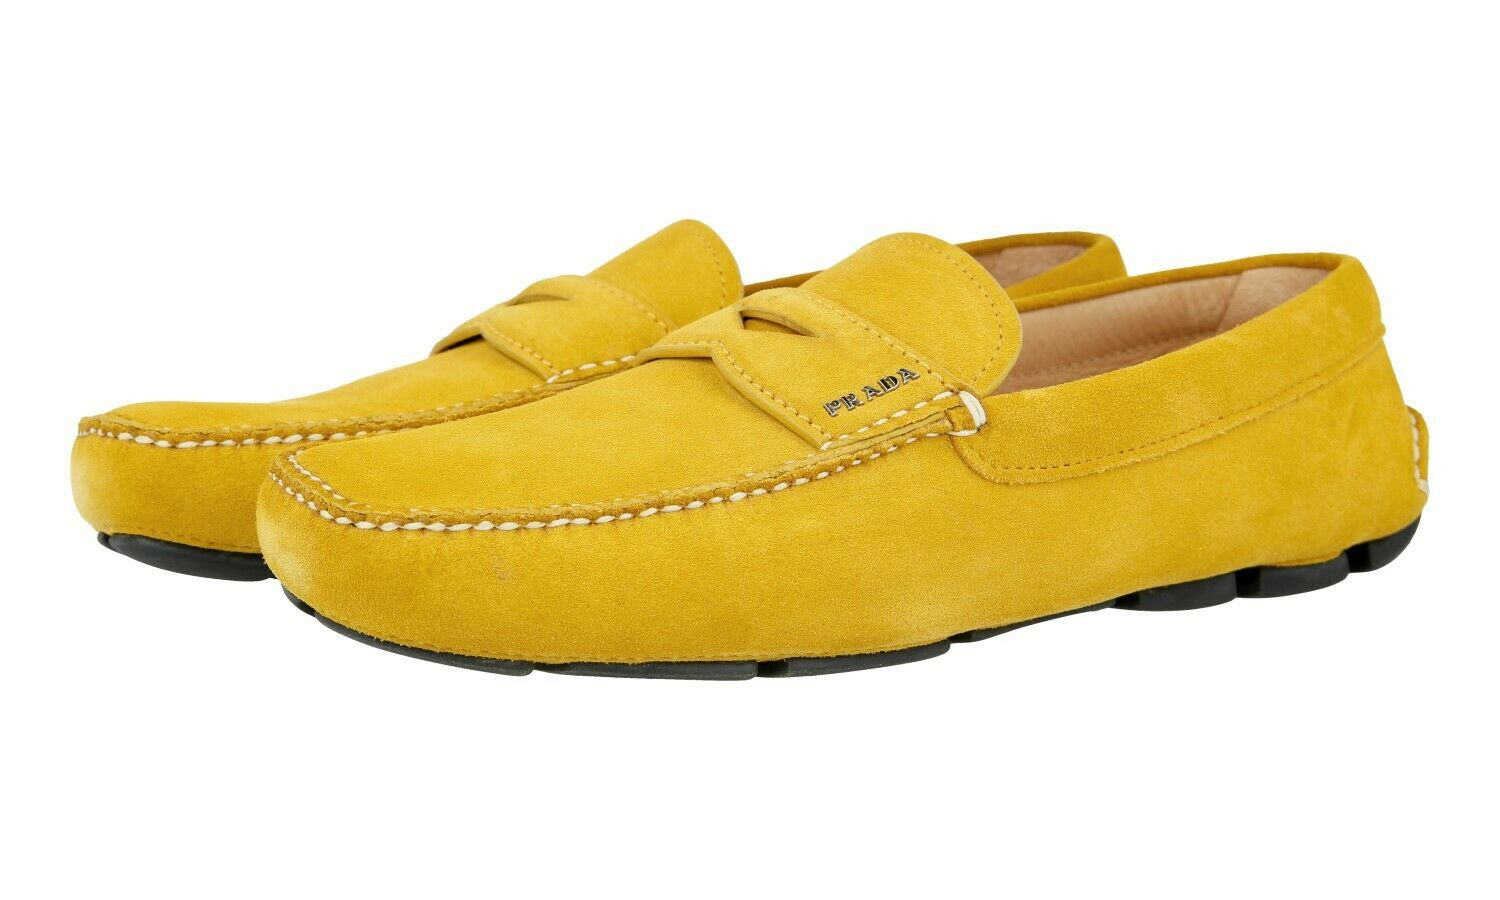 39e648c51e5 AUTH LUXURY PRADA PENNY LOAFER SHOES 2DD001 SUEDE SOLEIL 10 44 44